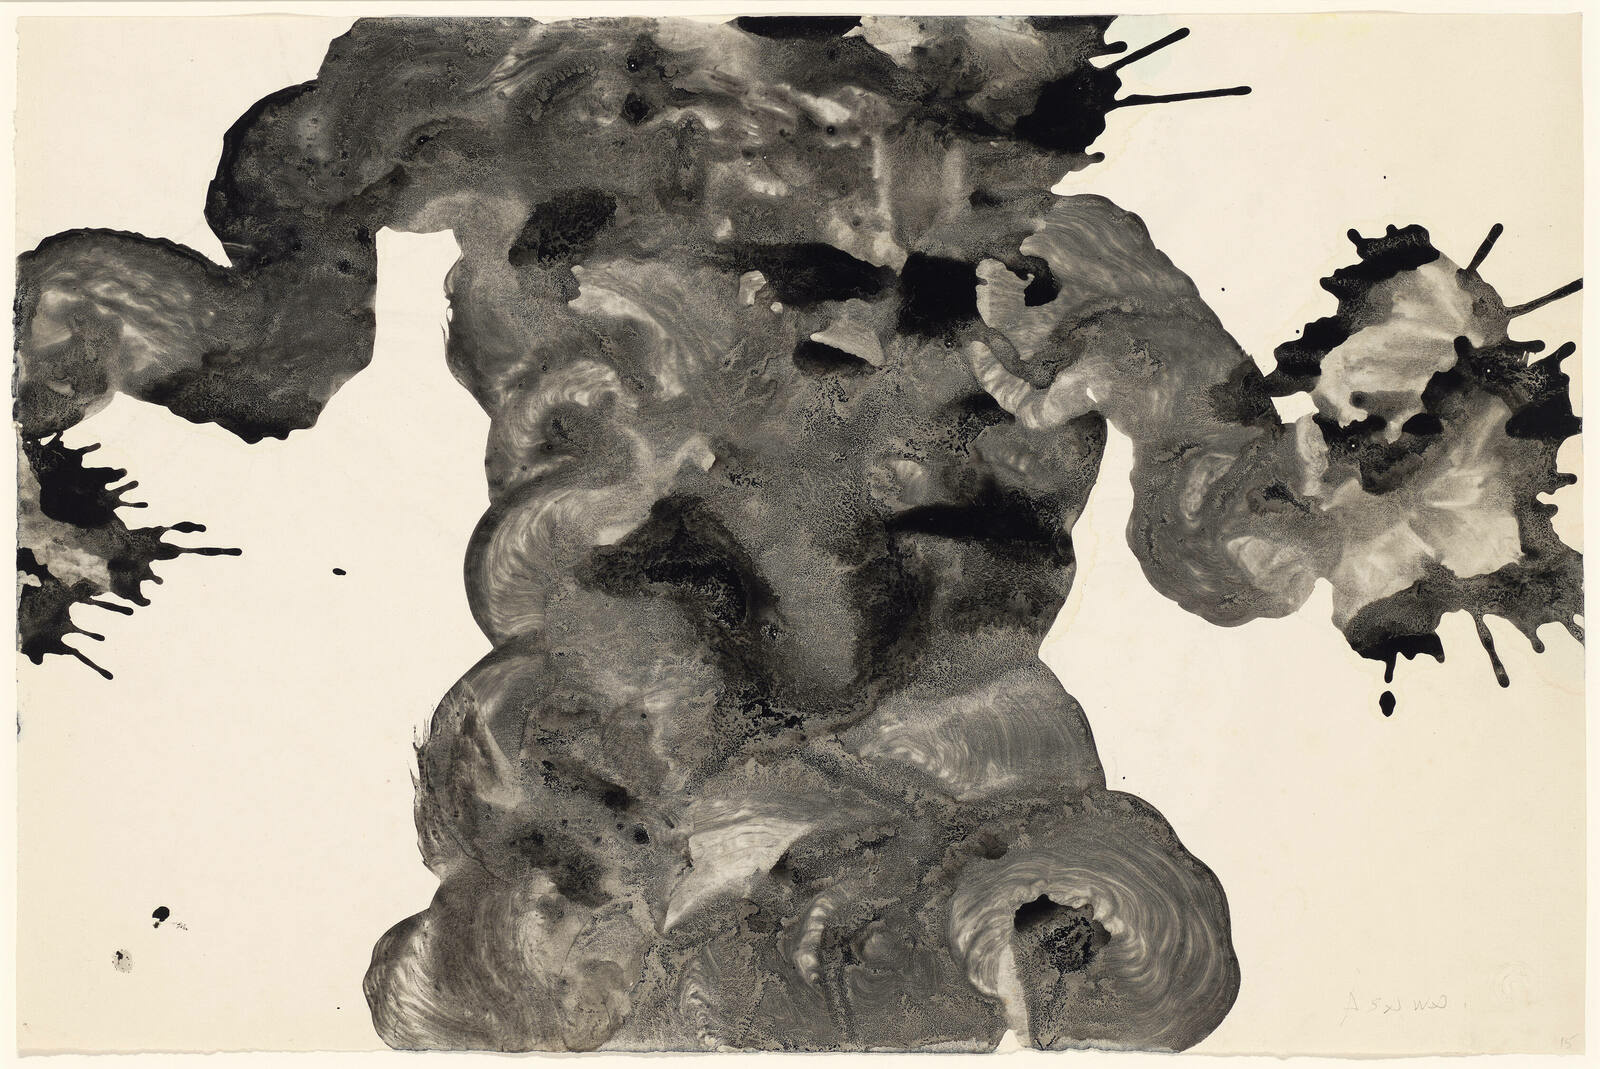 Inky brush strokes fill the center third of a sheet of paper and branch sideways to the edges, ending in watery splash marks